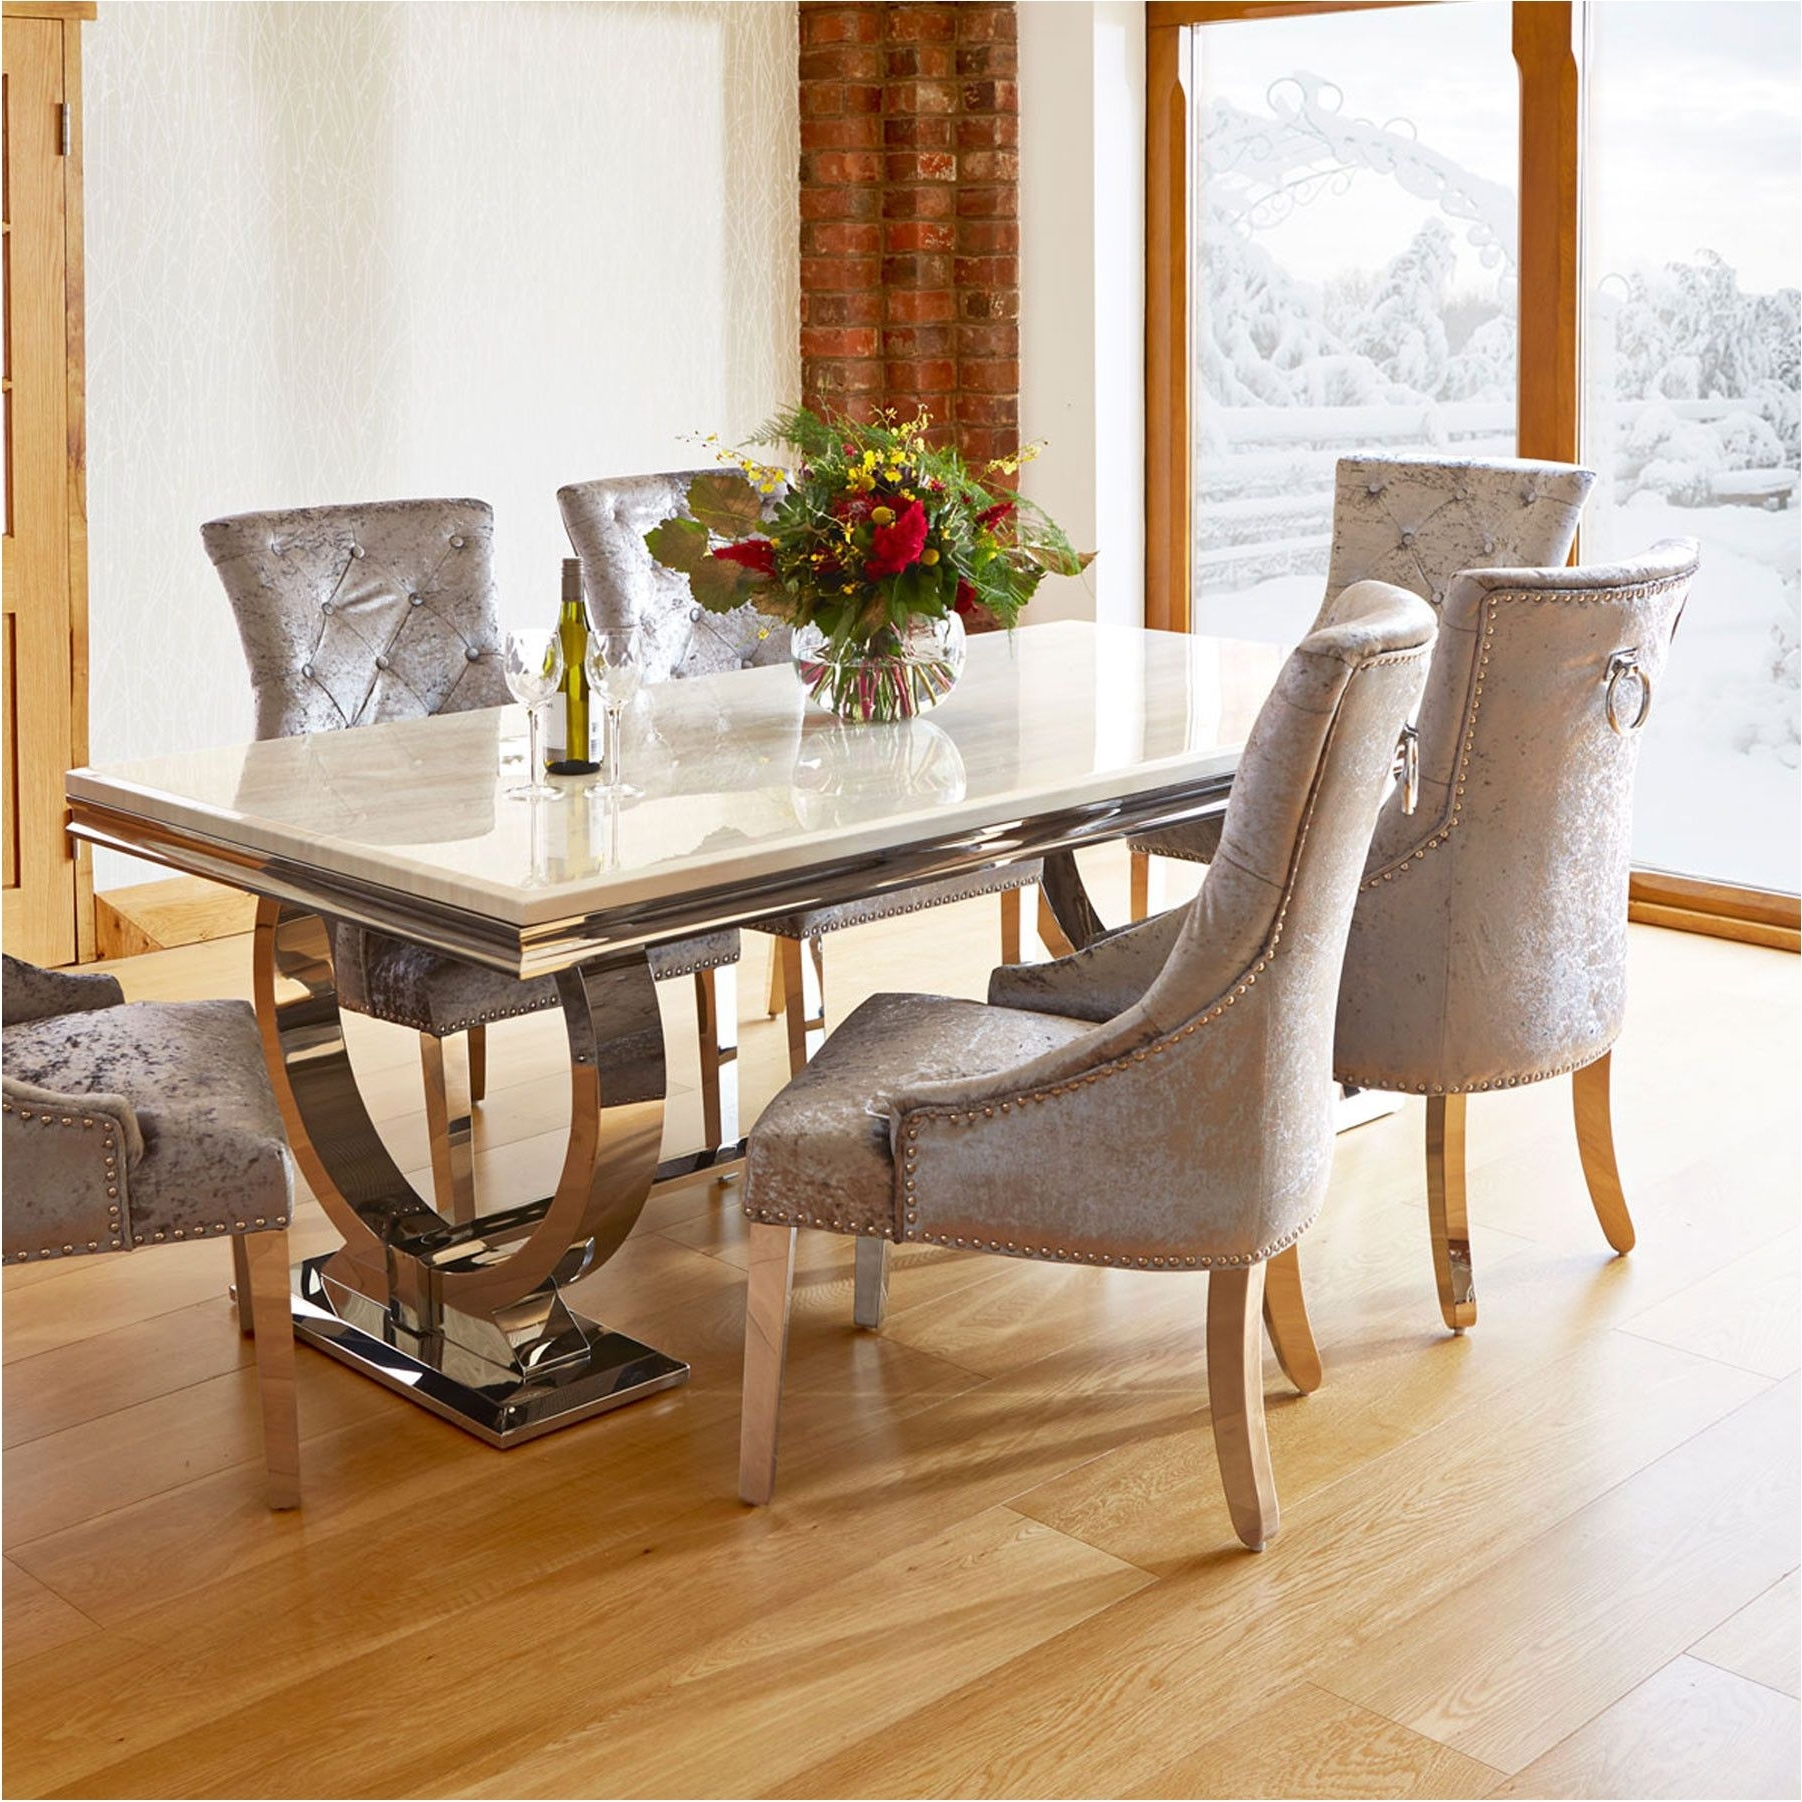 Most Current Extending Marble Dining Tables Intended For Extraordinary Jenson Extending Dining Table Dark Stain Oak Made (View 16 of 25)